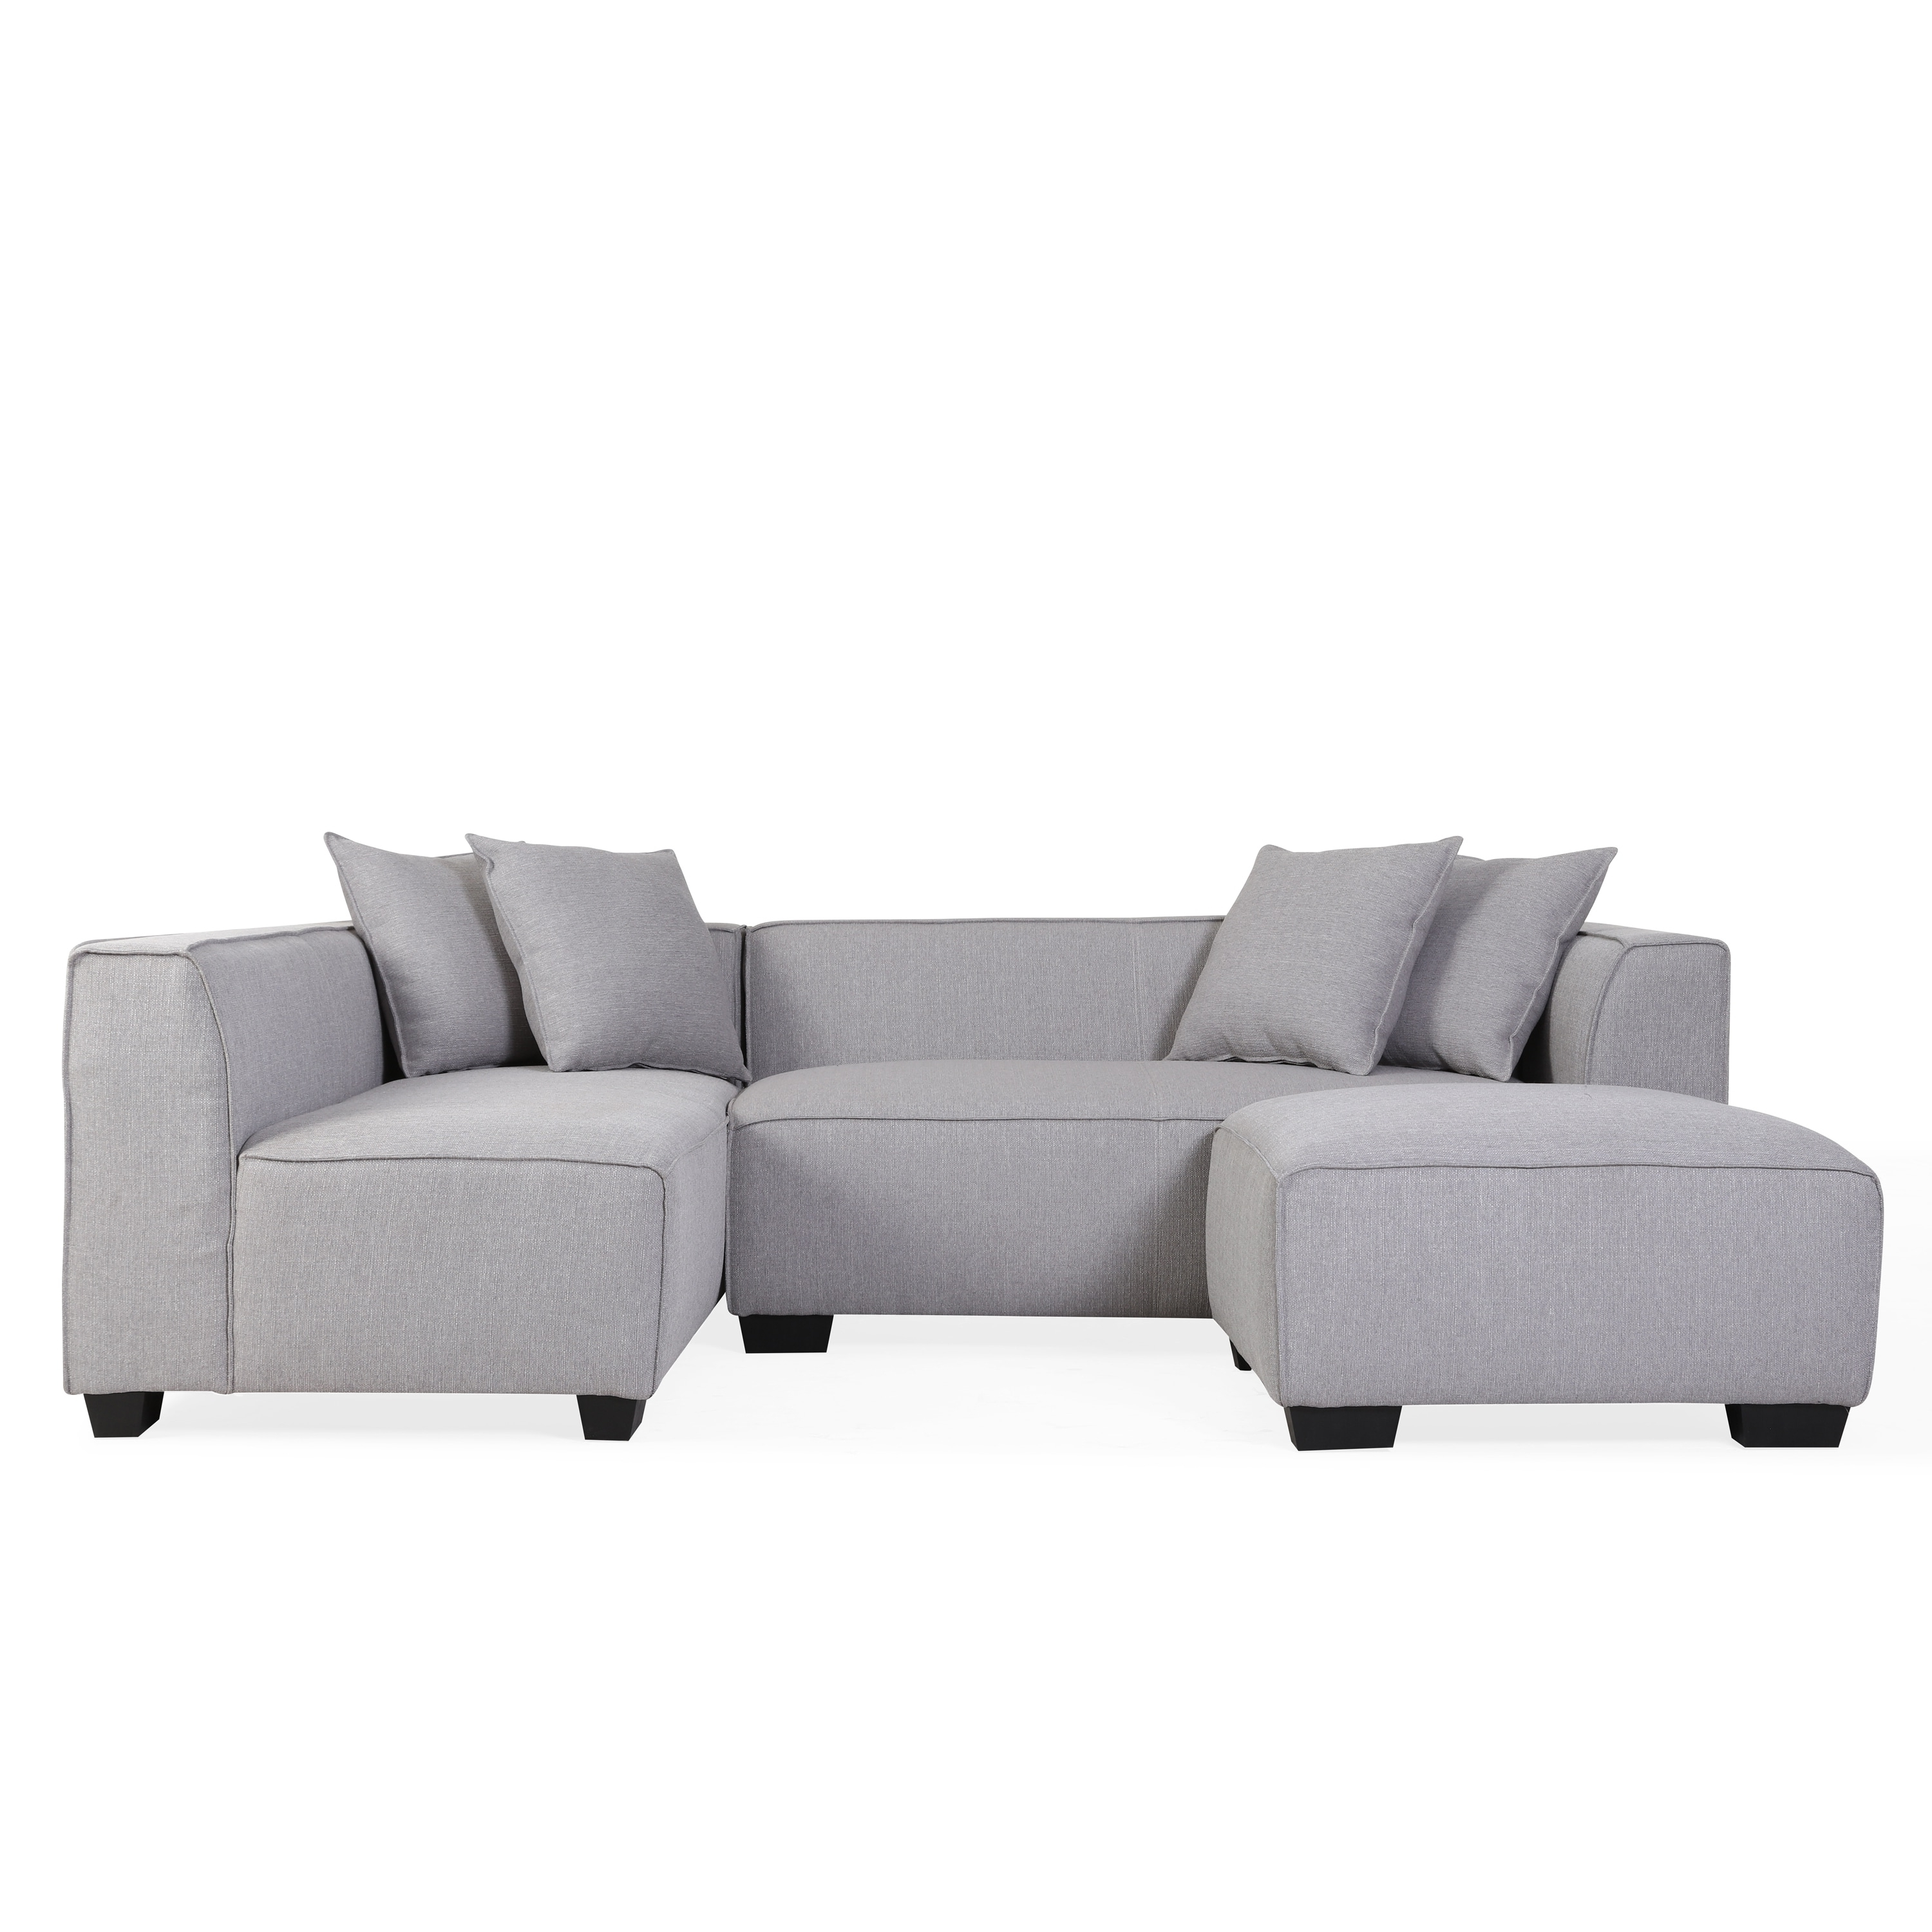 Phoenix Sectional Sofas For Most Up To Date Handy Living Phoenix Grey Sectional Sofa With Ottoman – Free (View 12 of 20)